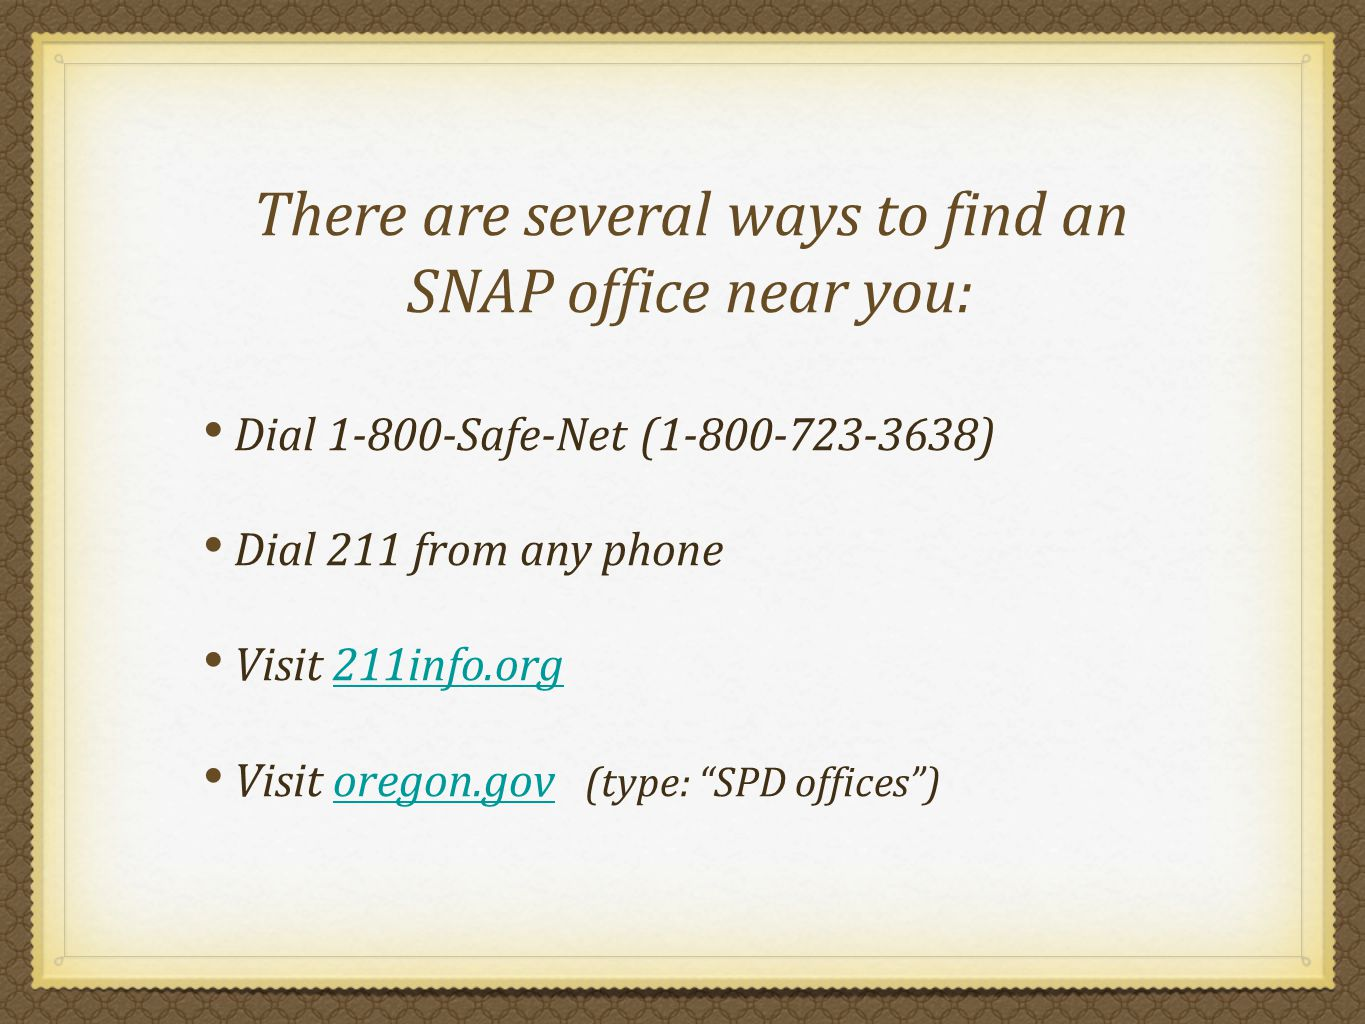 There are several ways to find an SNAP office near you: Dial 1-800-Safe-Net (1-800-723-3638) Dial 211 from any phone Visit 211info.org211info.org Visit oregon.gov (type: SPD offices)oregon.gov